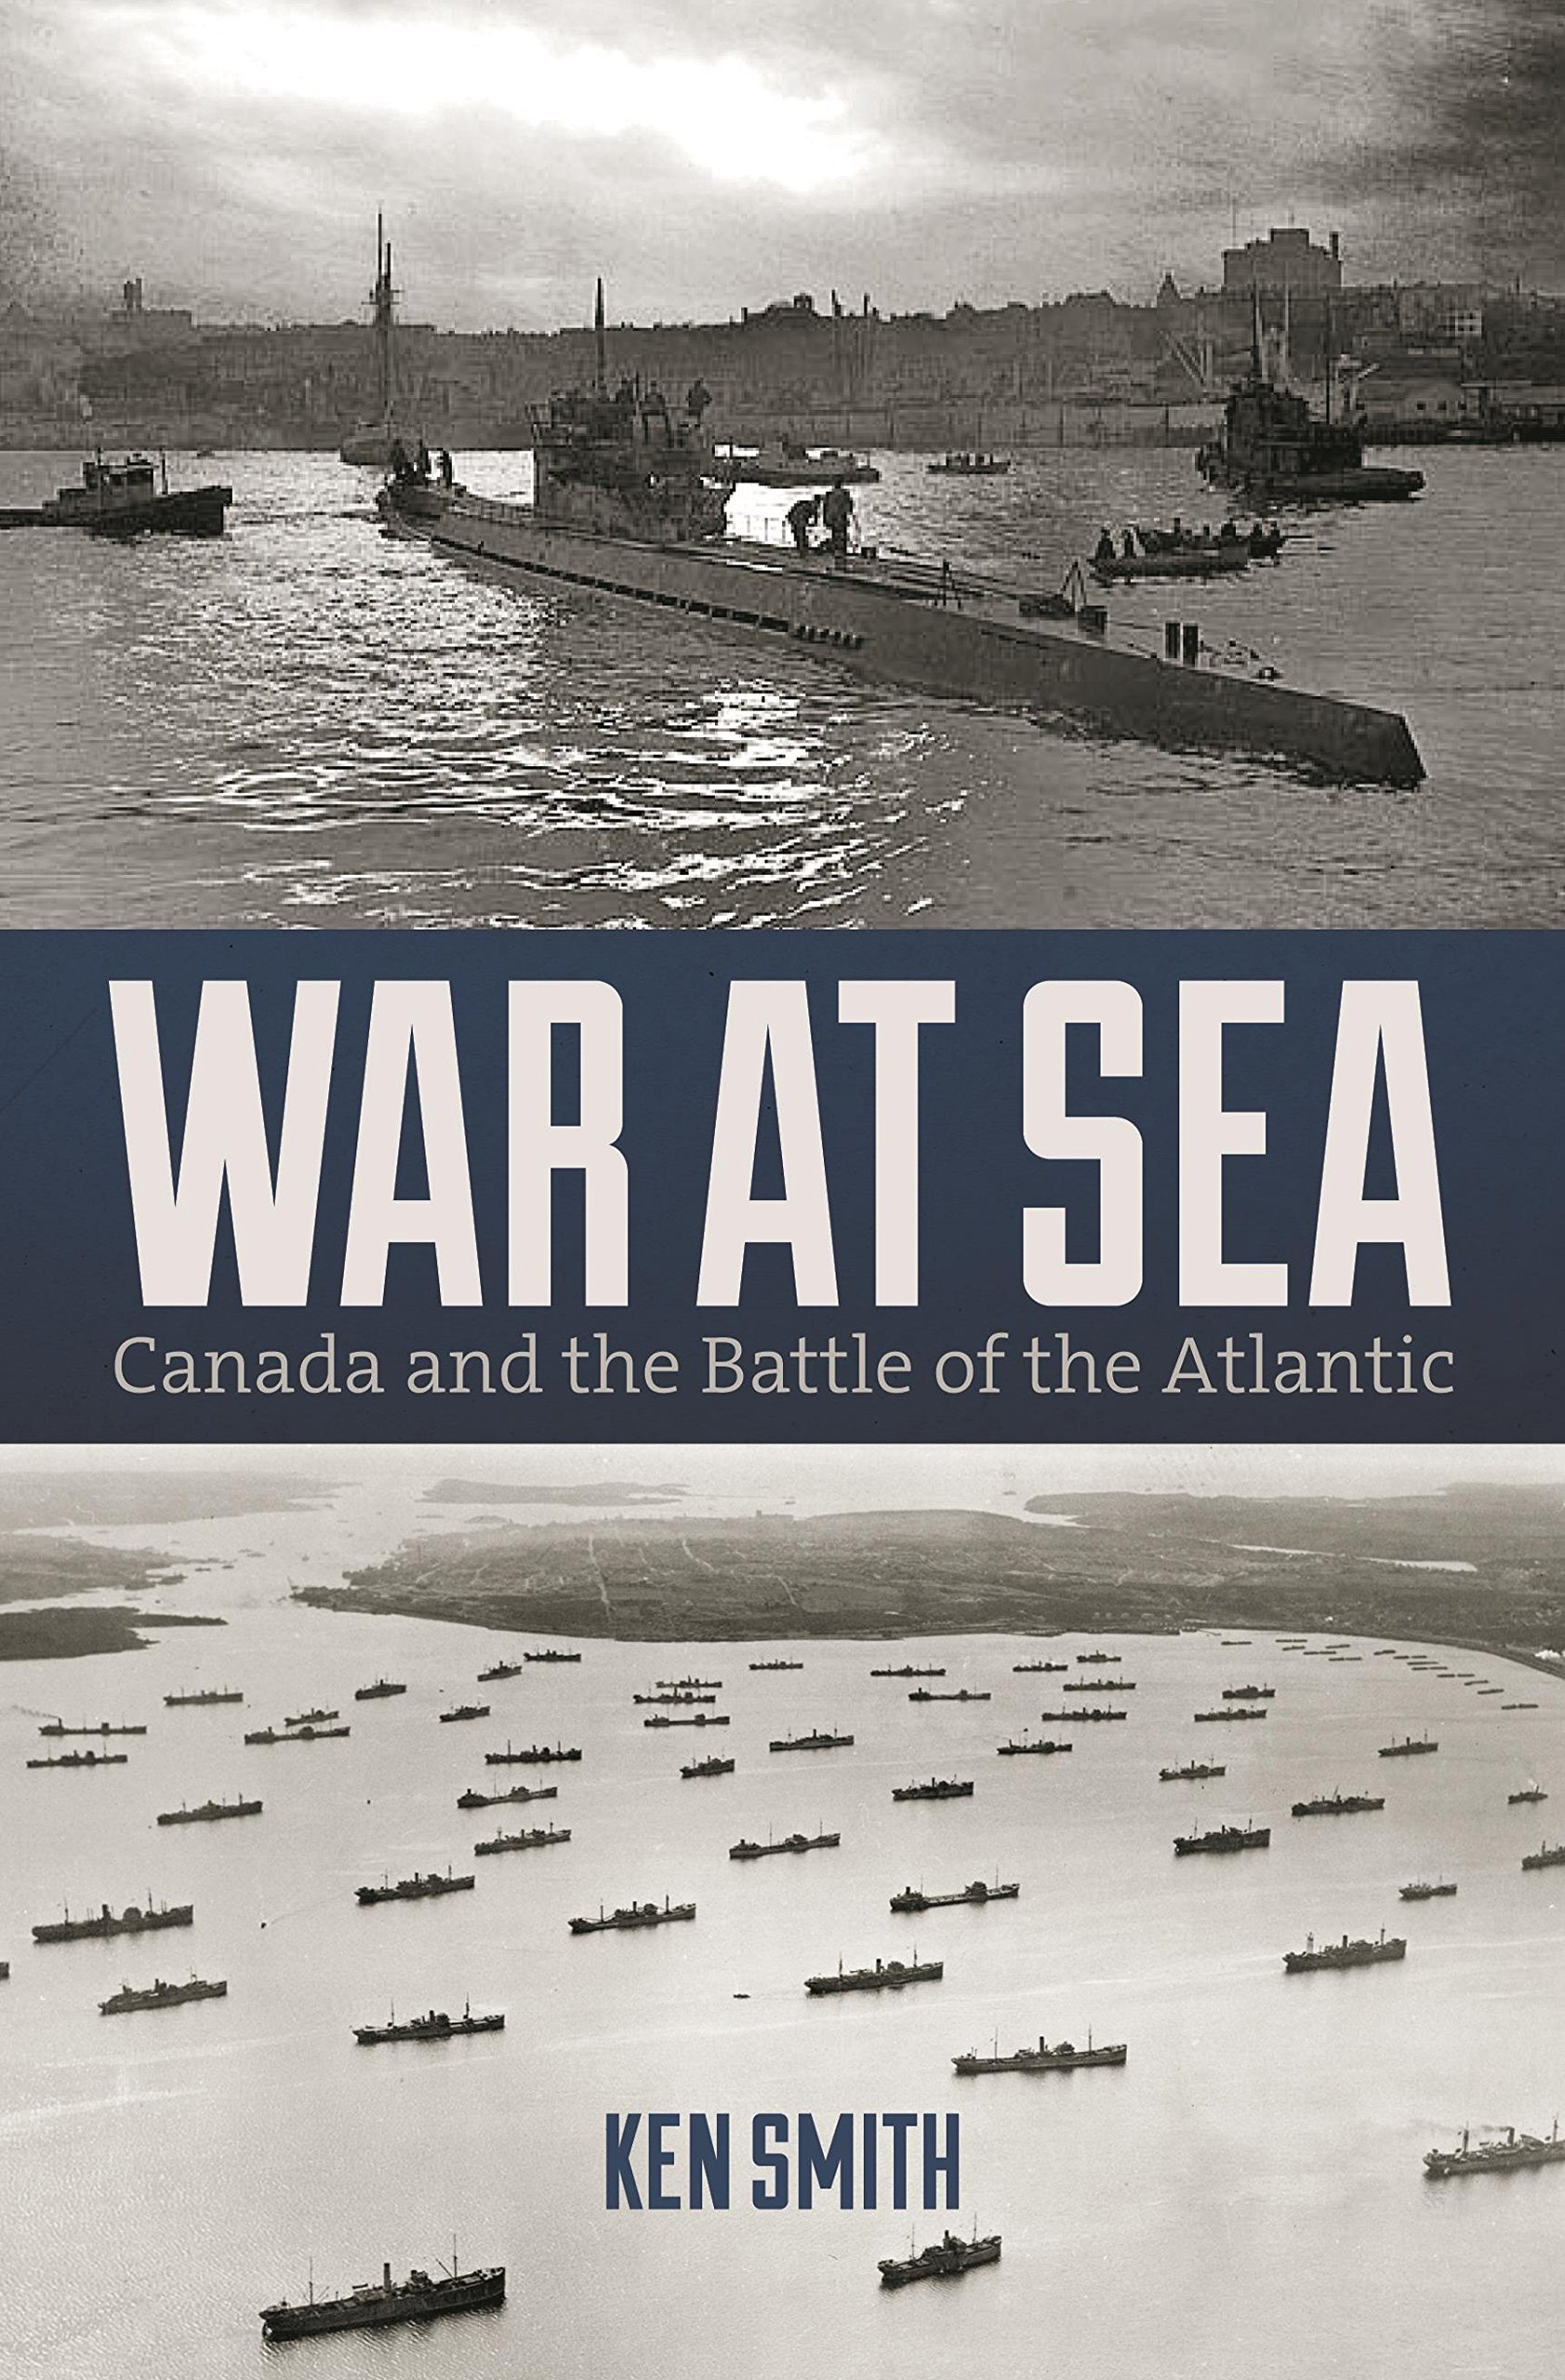 War at Sea: Canada and the Battle of the Atlantic